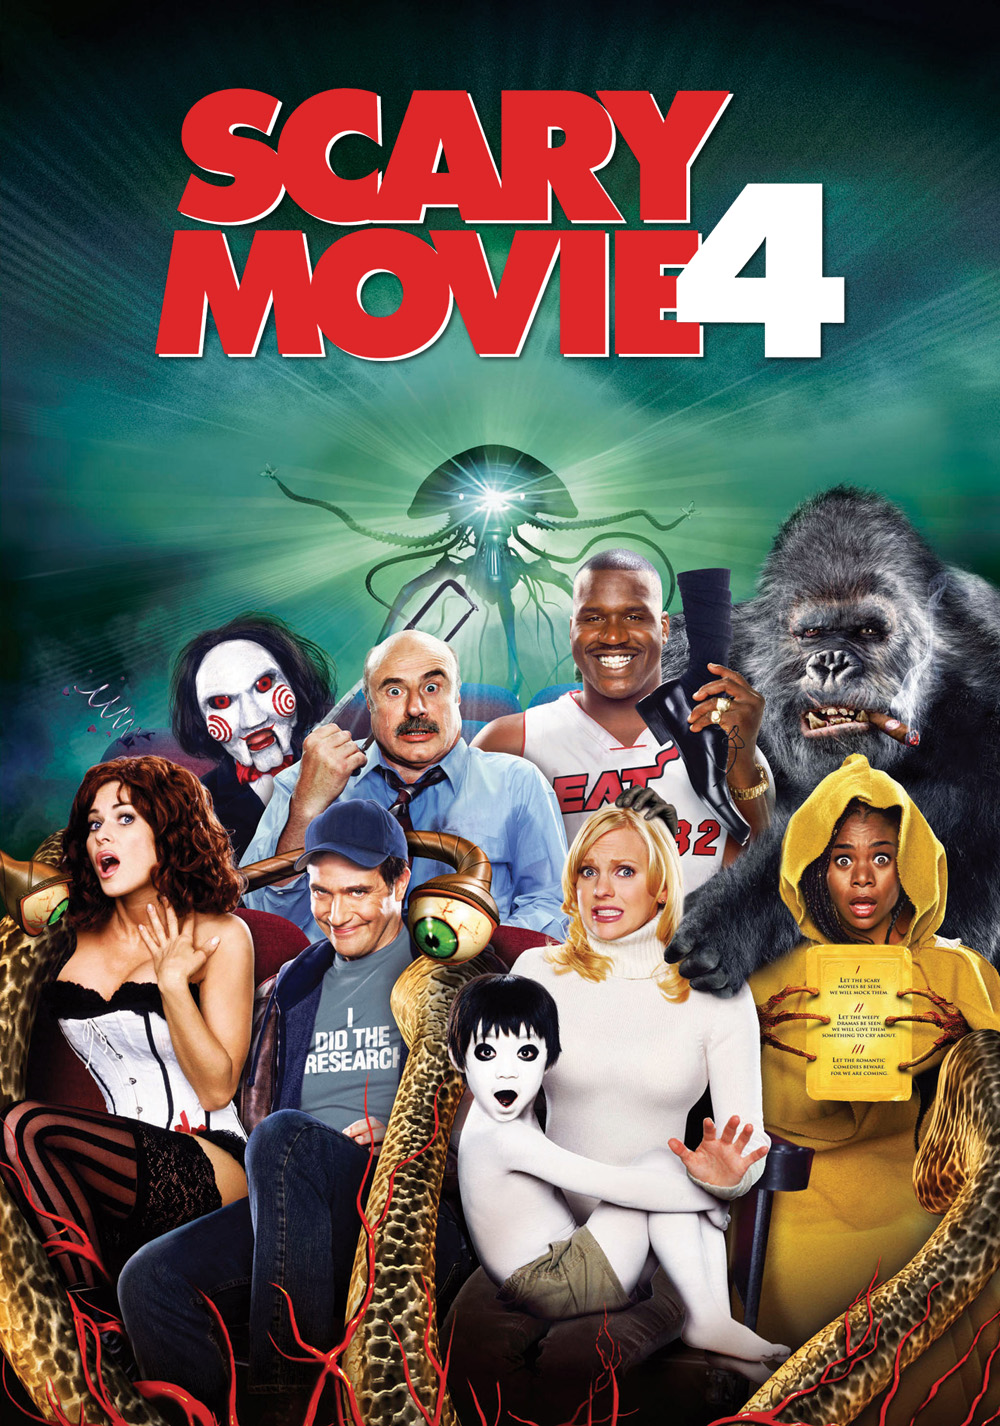 scary-movie-4-529305cbe3e12.jpg